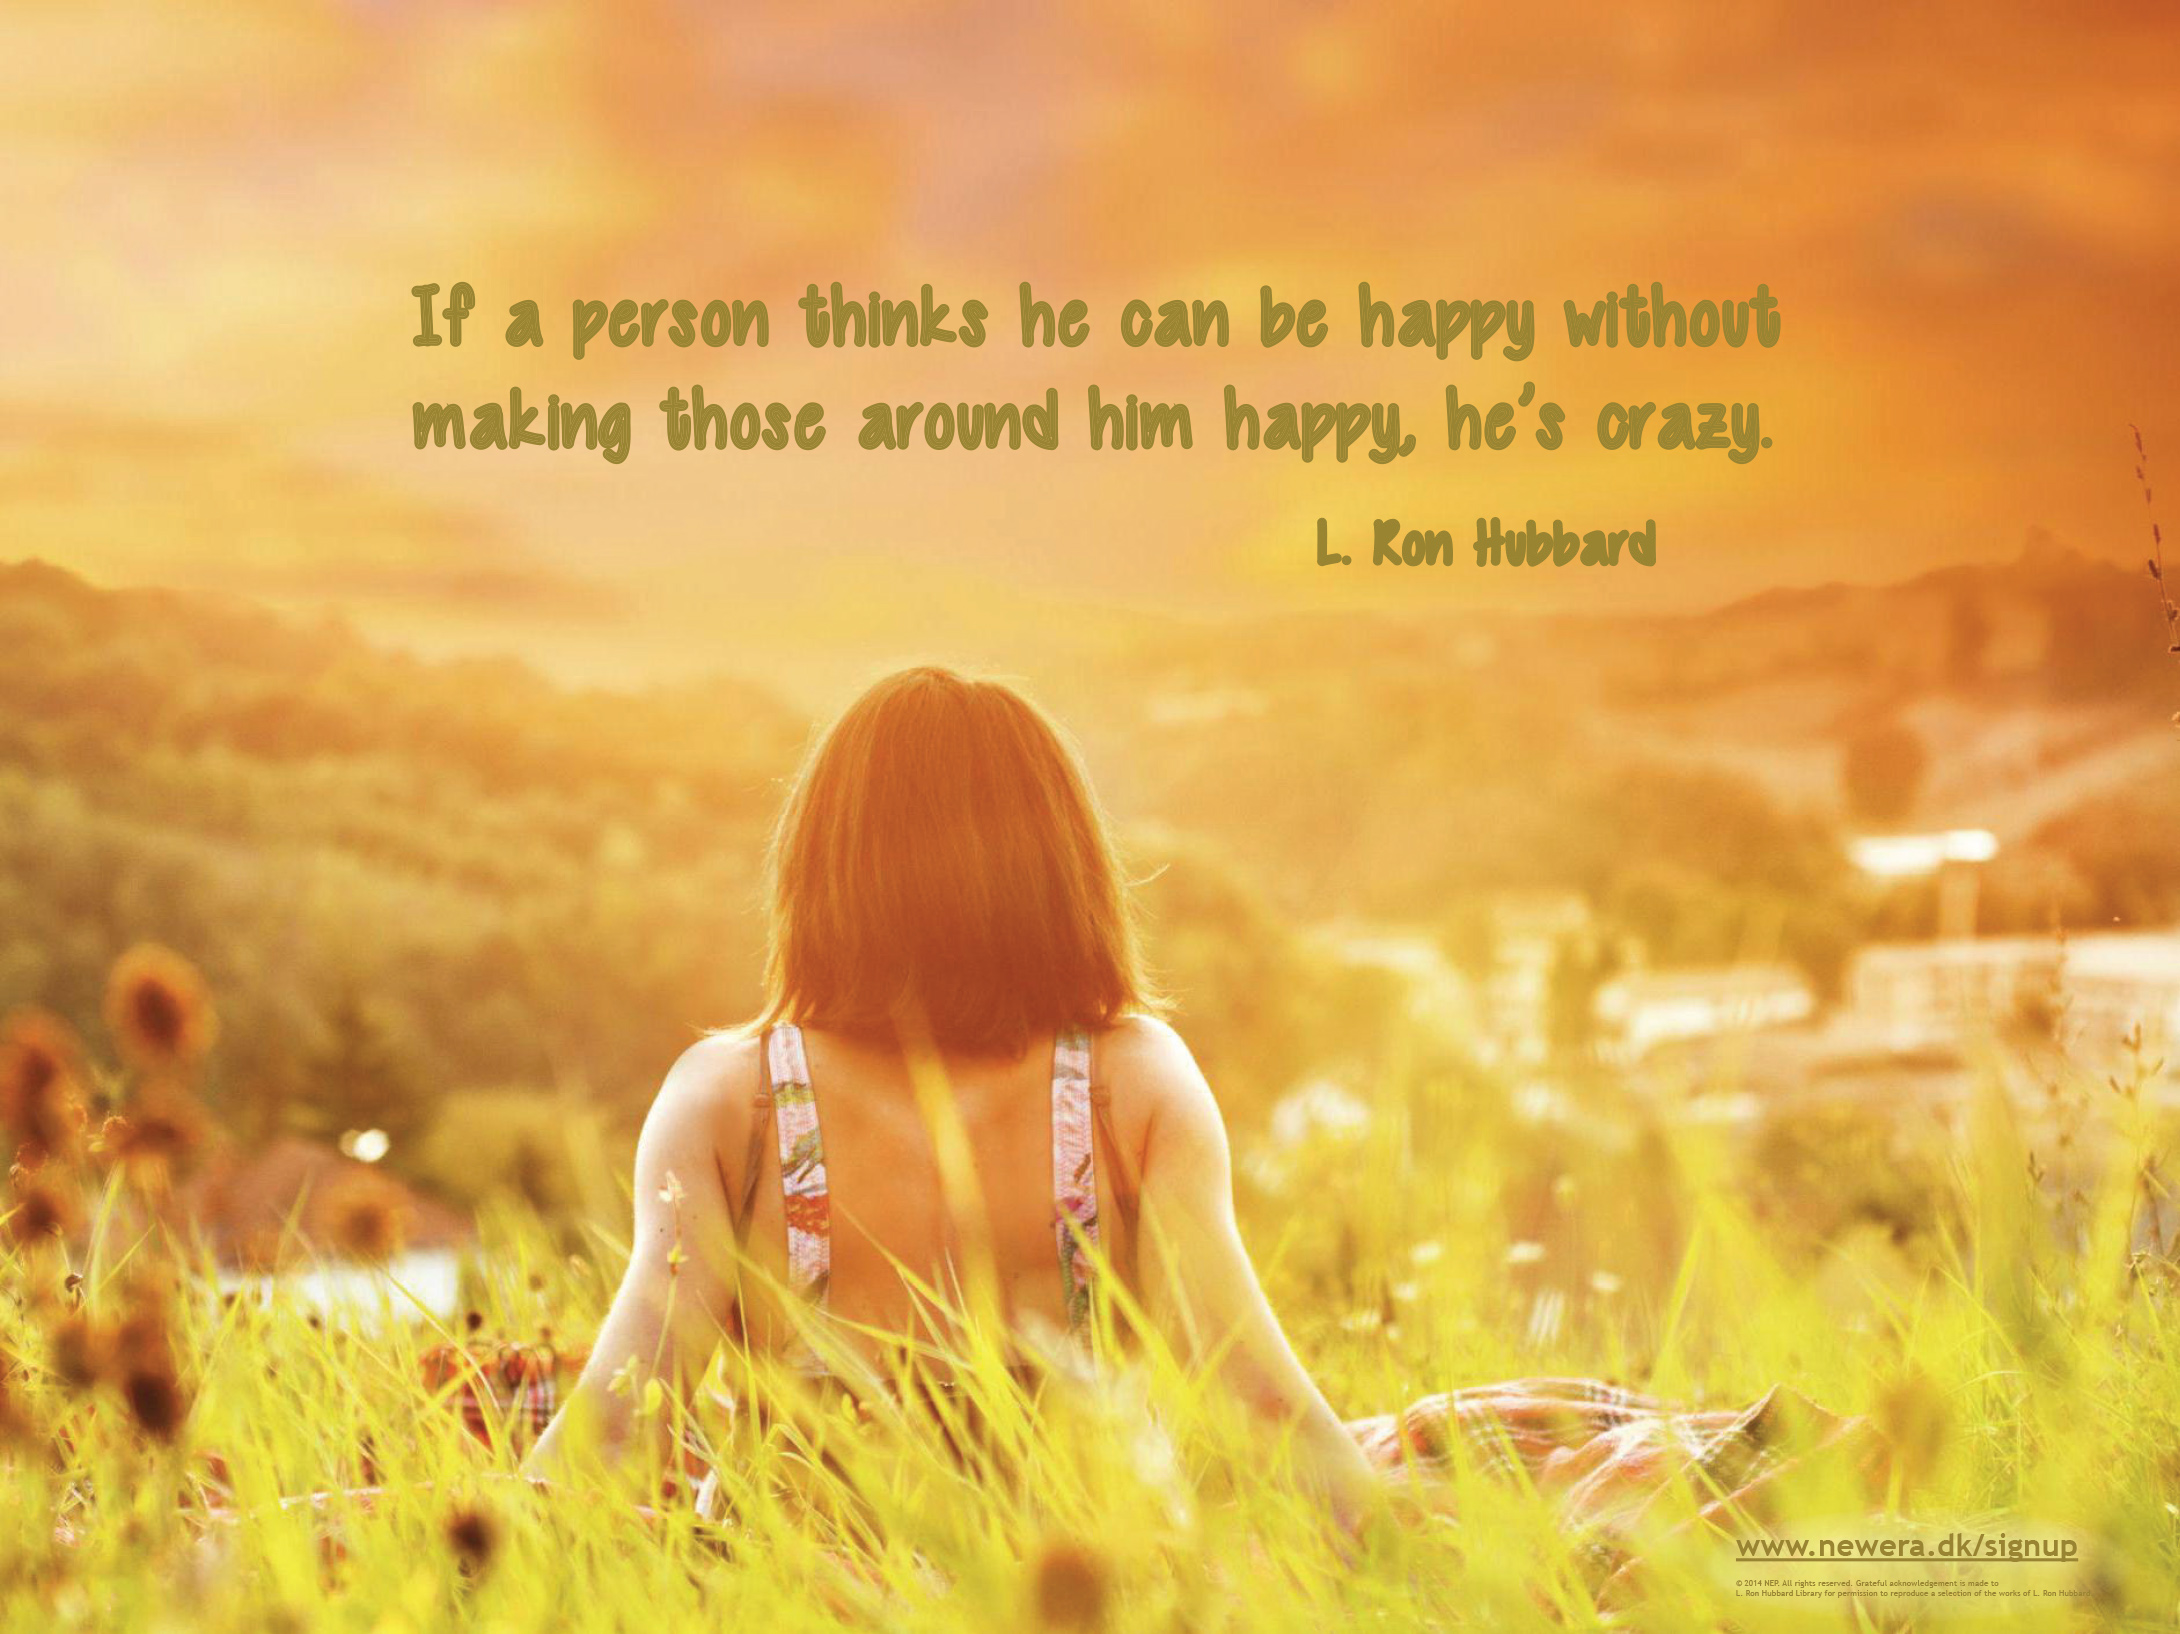 L. Ron Hubbard Quotes and Desktop Backgrounds - Real Scientology Beliefs